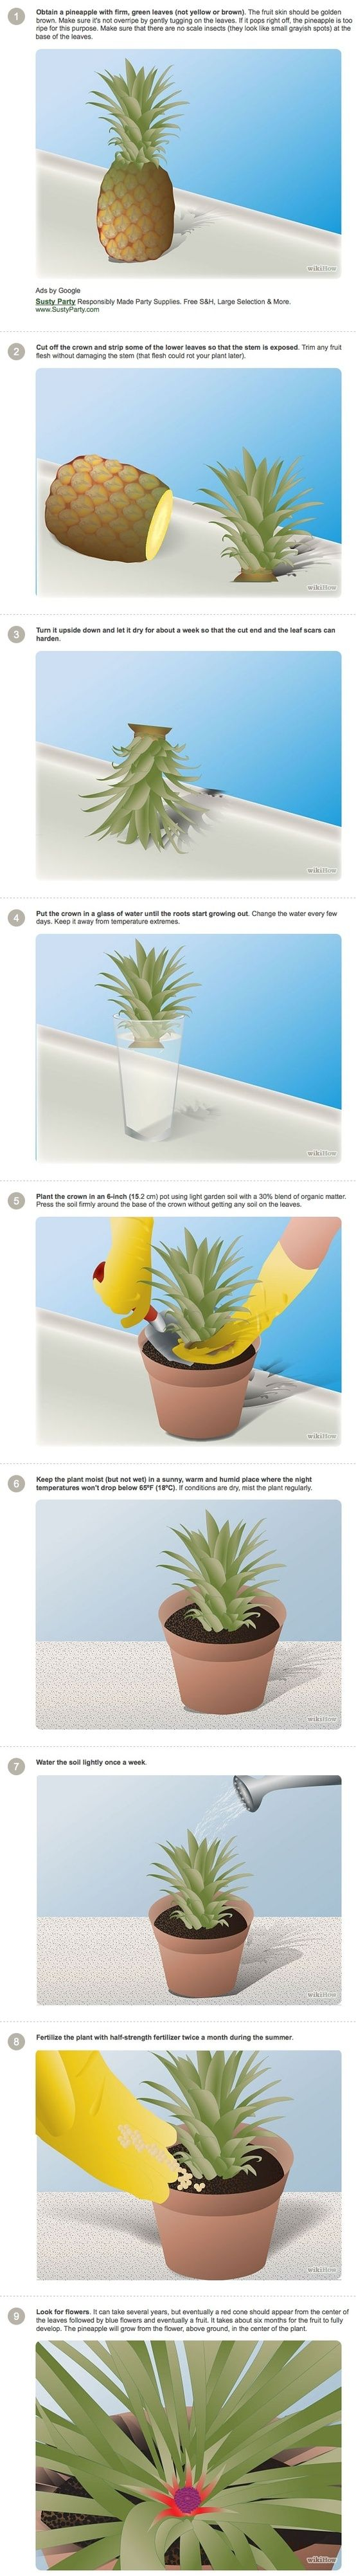 How to grow a pineapple (but instead of slicing the top off which could lead to rot, so I would twist and pull the top off)